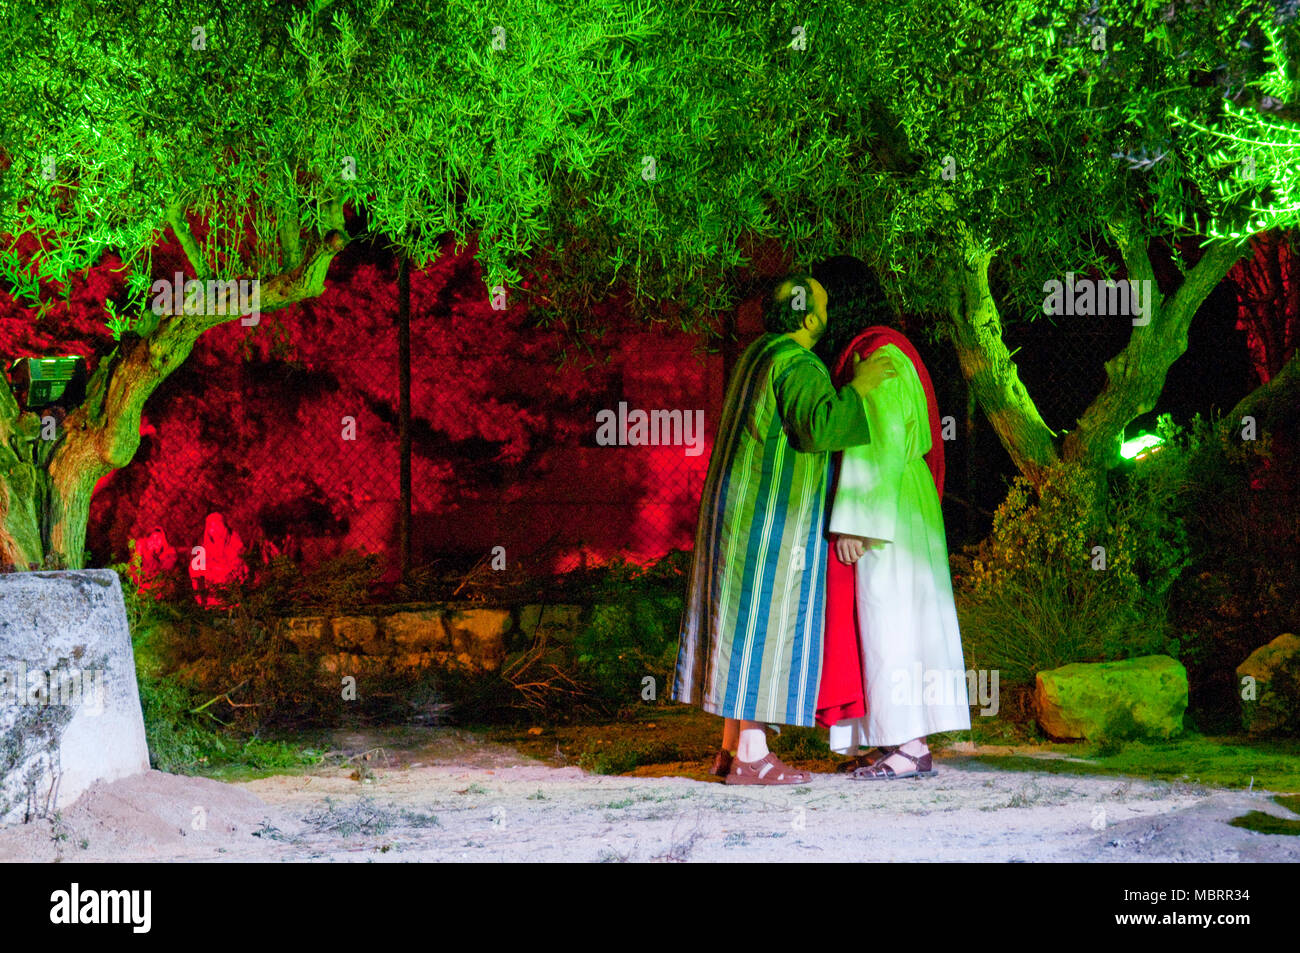 Passion of Chinchon: the Mount of olives scene. Chinchon, Madrid province, Spain. Stock Photo